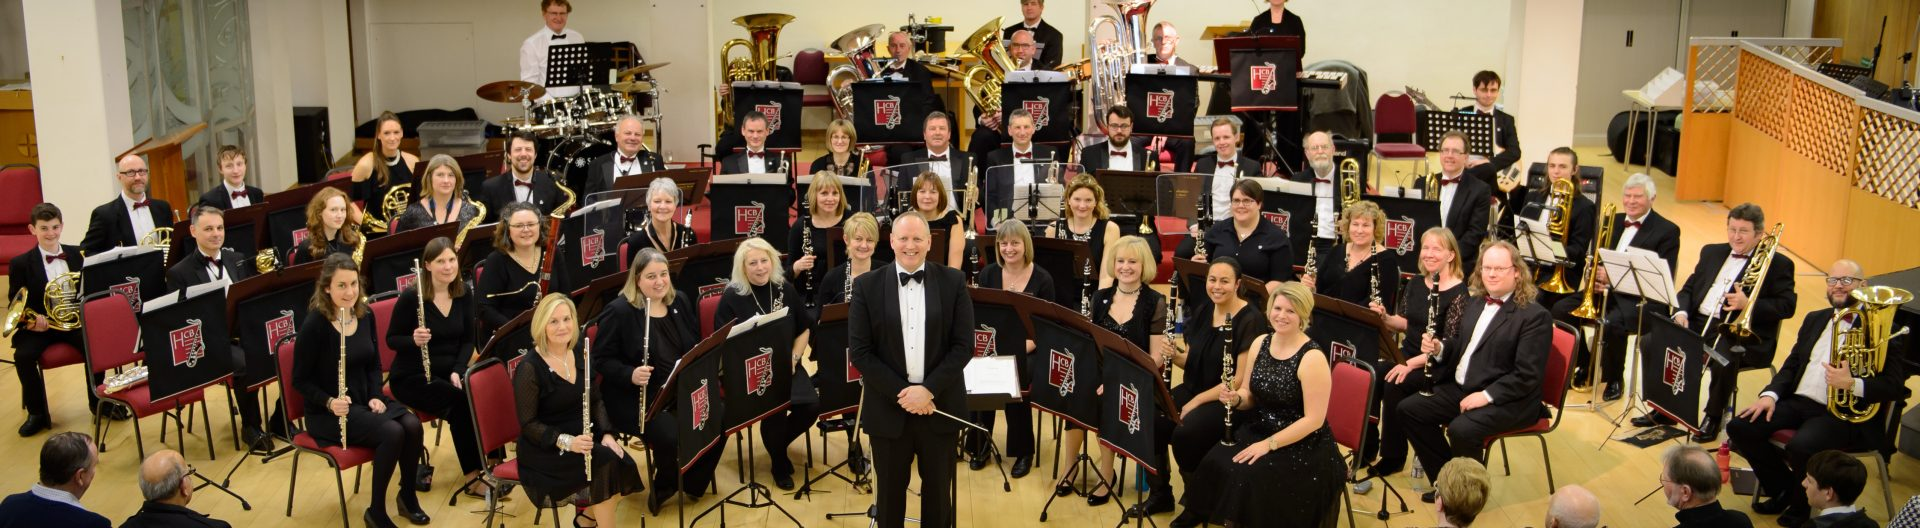 We are the Huntingdonshire Concert Band!